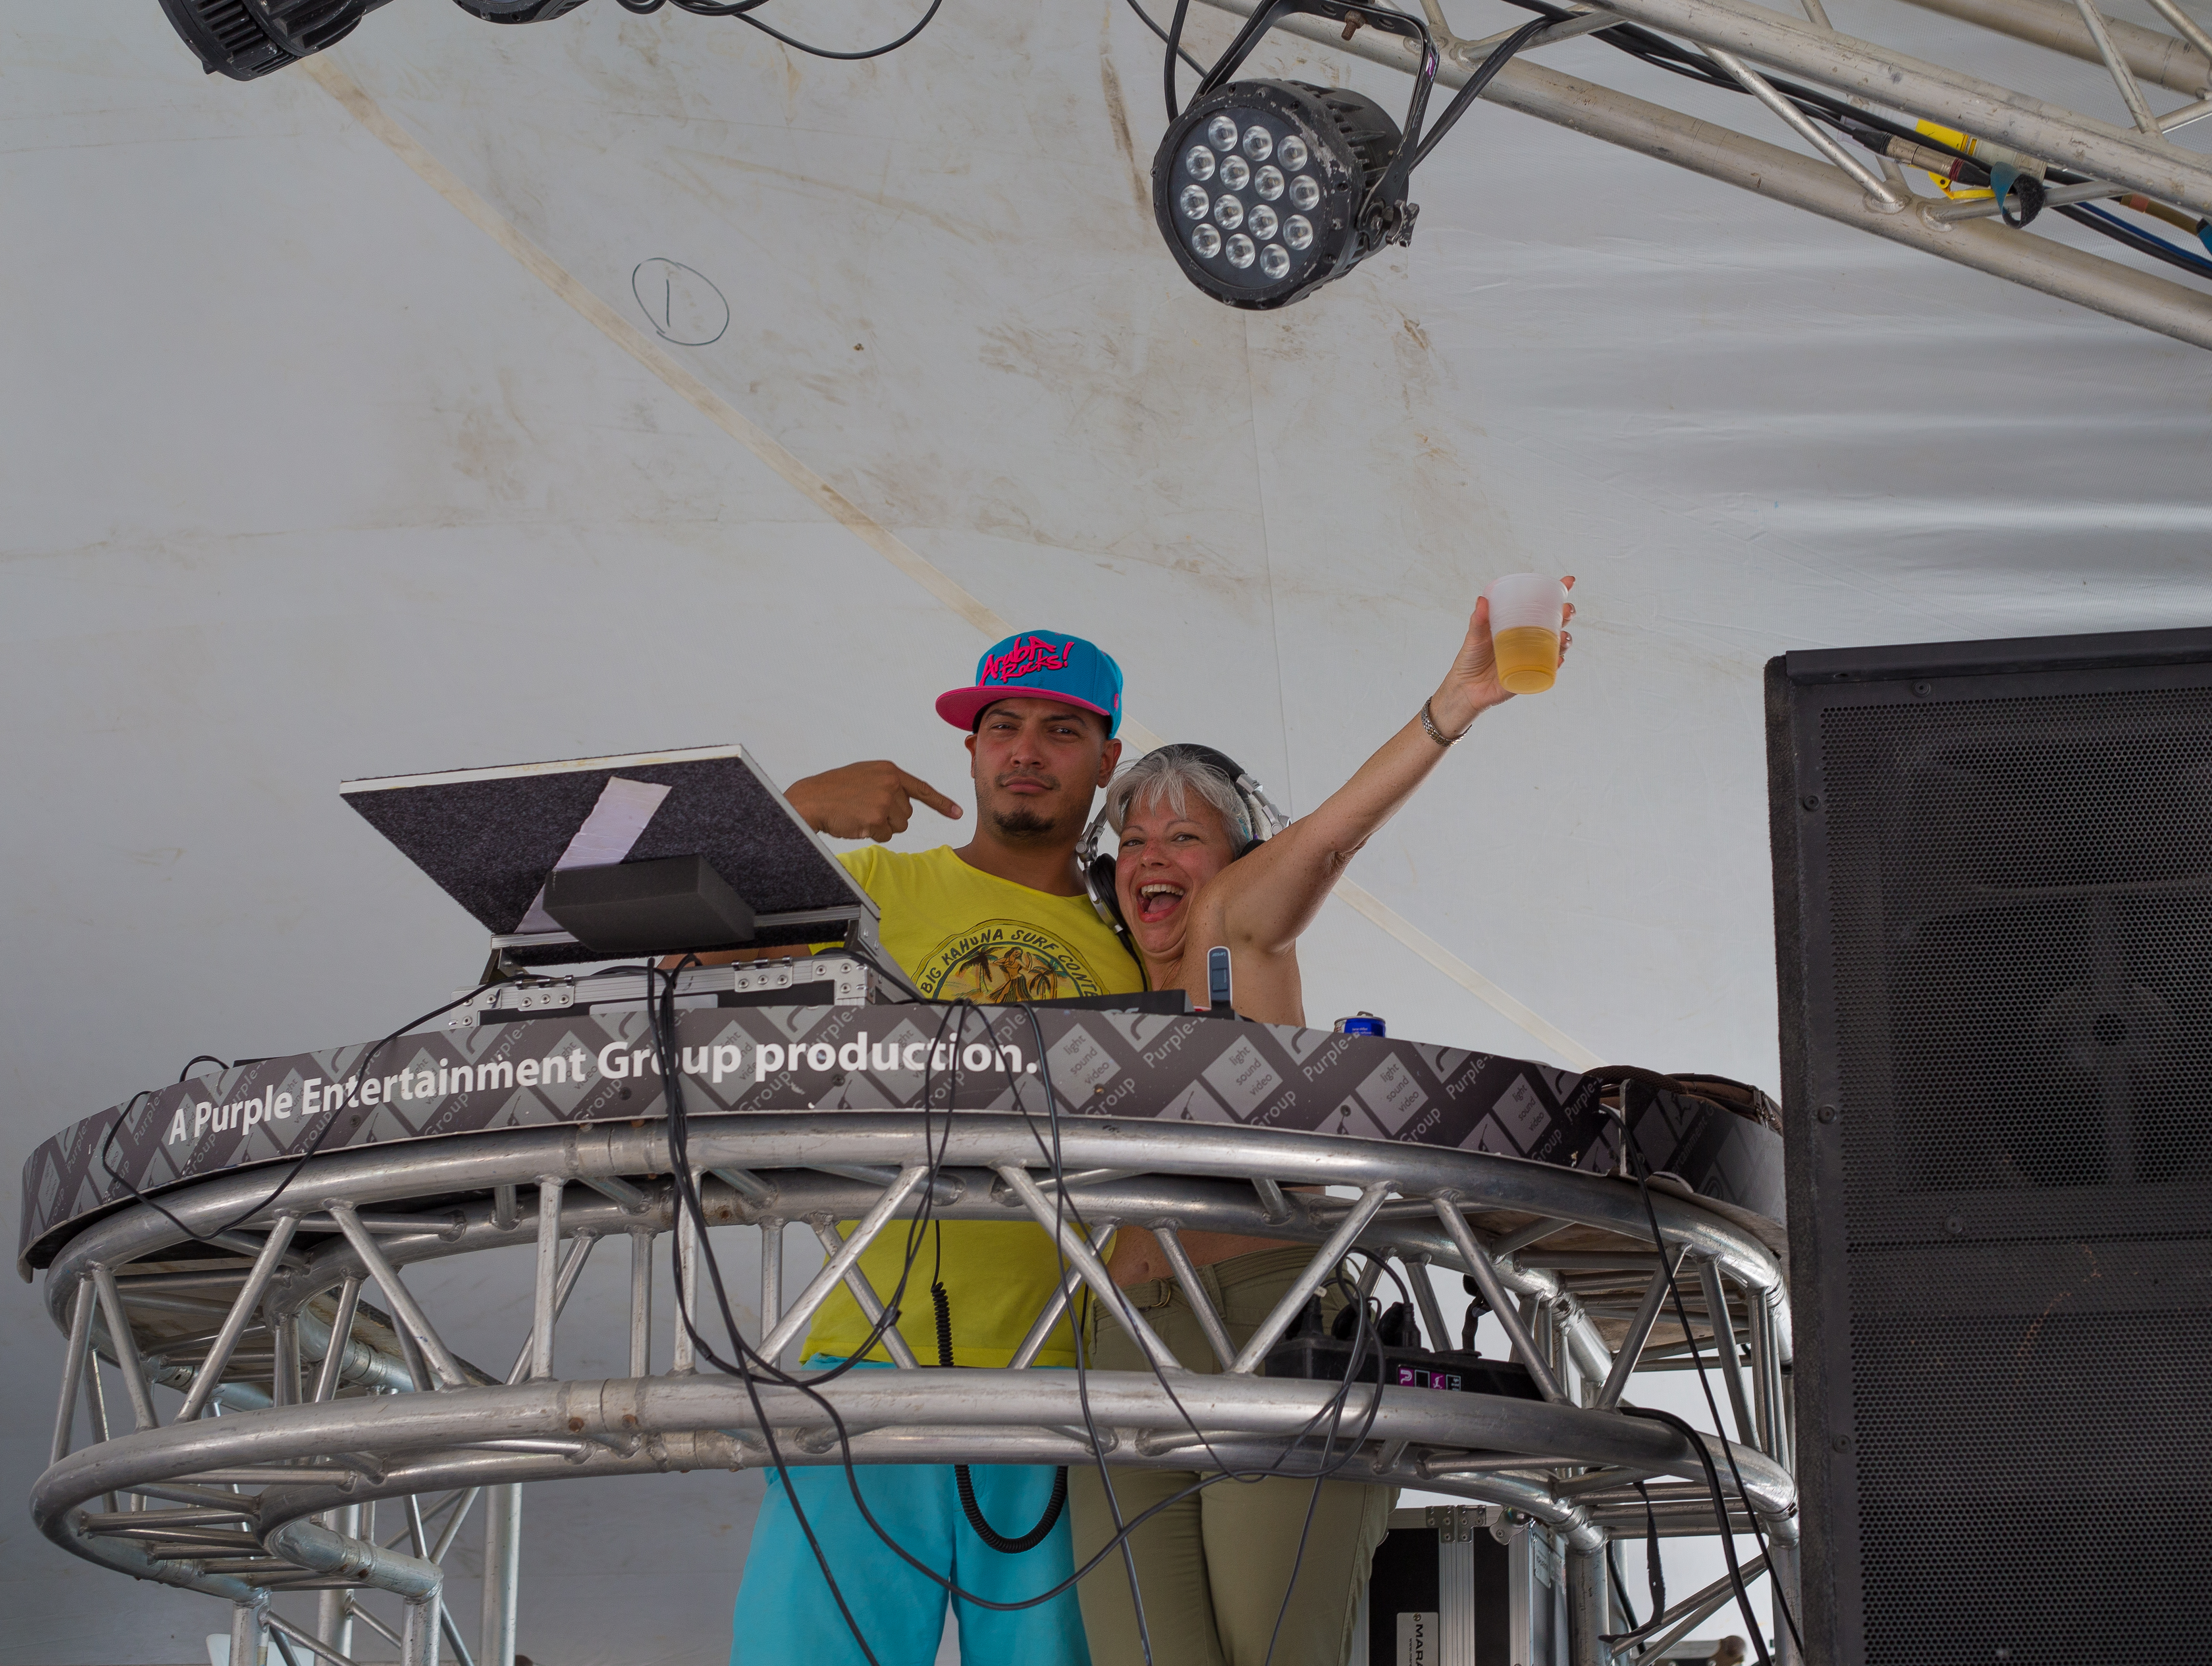 A73Q2691-1.jpg Hi-Winds DJ Booth